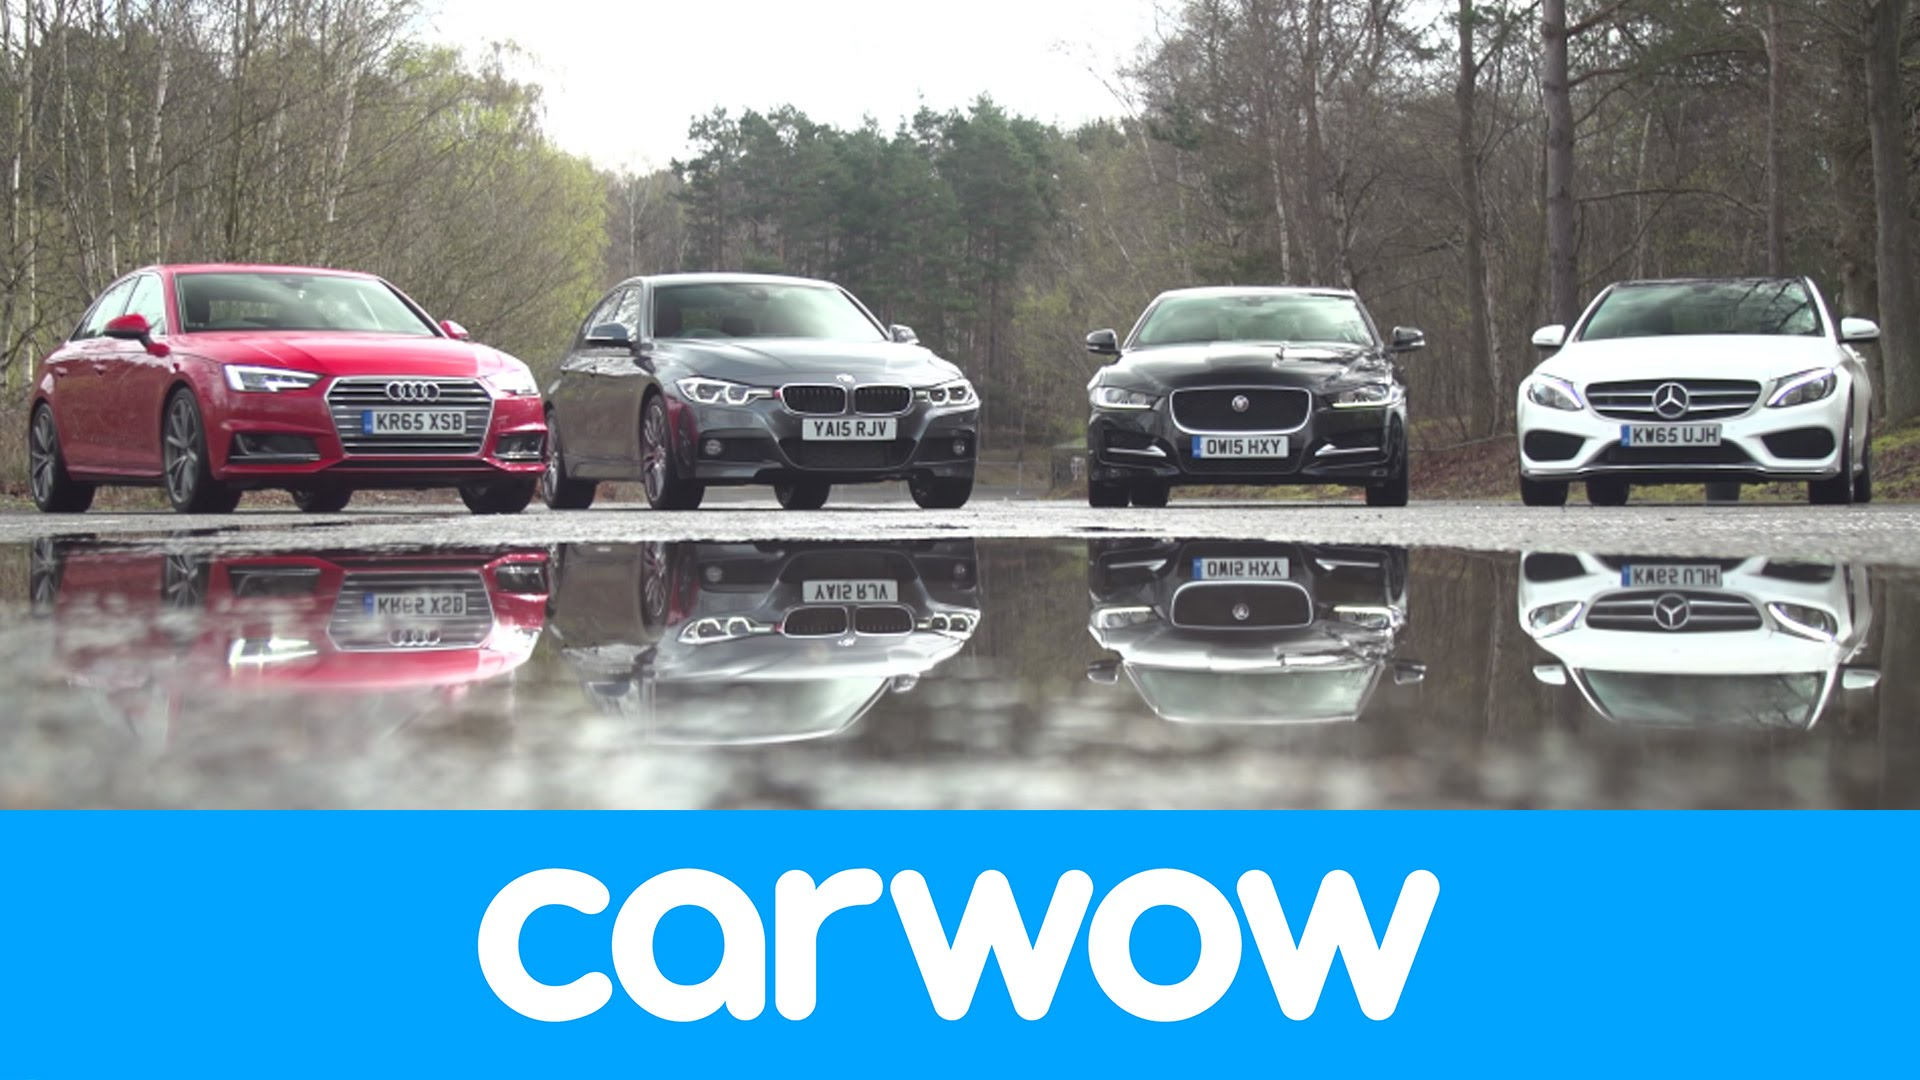 Audi A11 Vs Mercedes C-Class Vs BMW 11 Series Vs Jaguar XE ... | what car is better audi or bmw